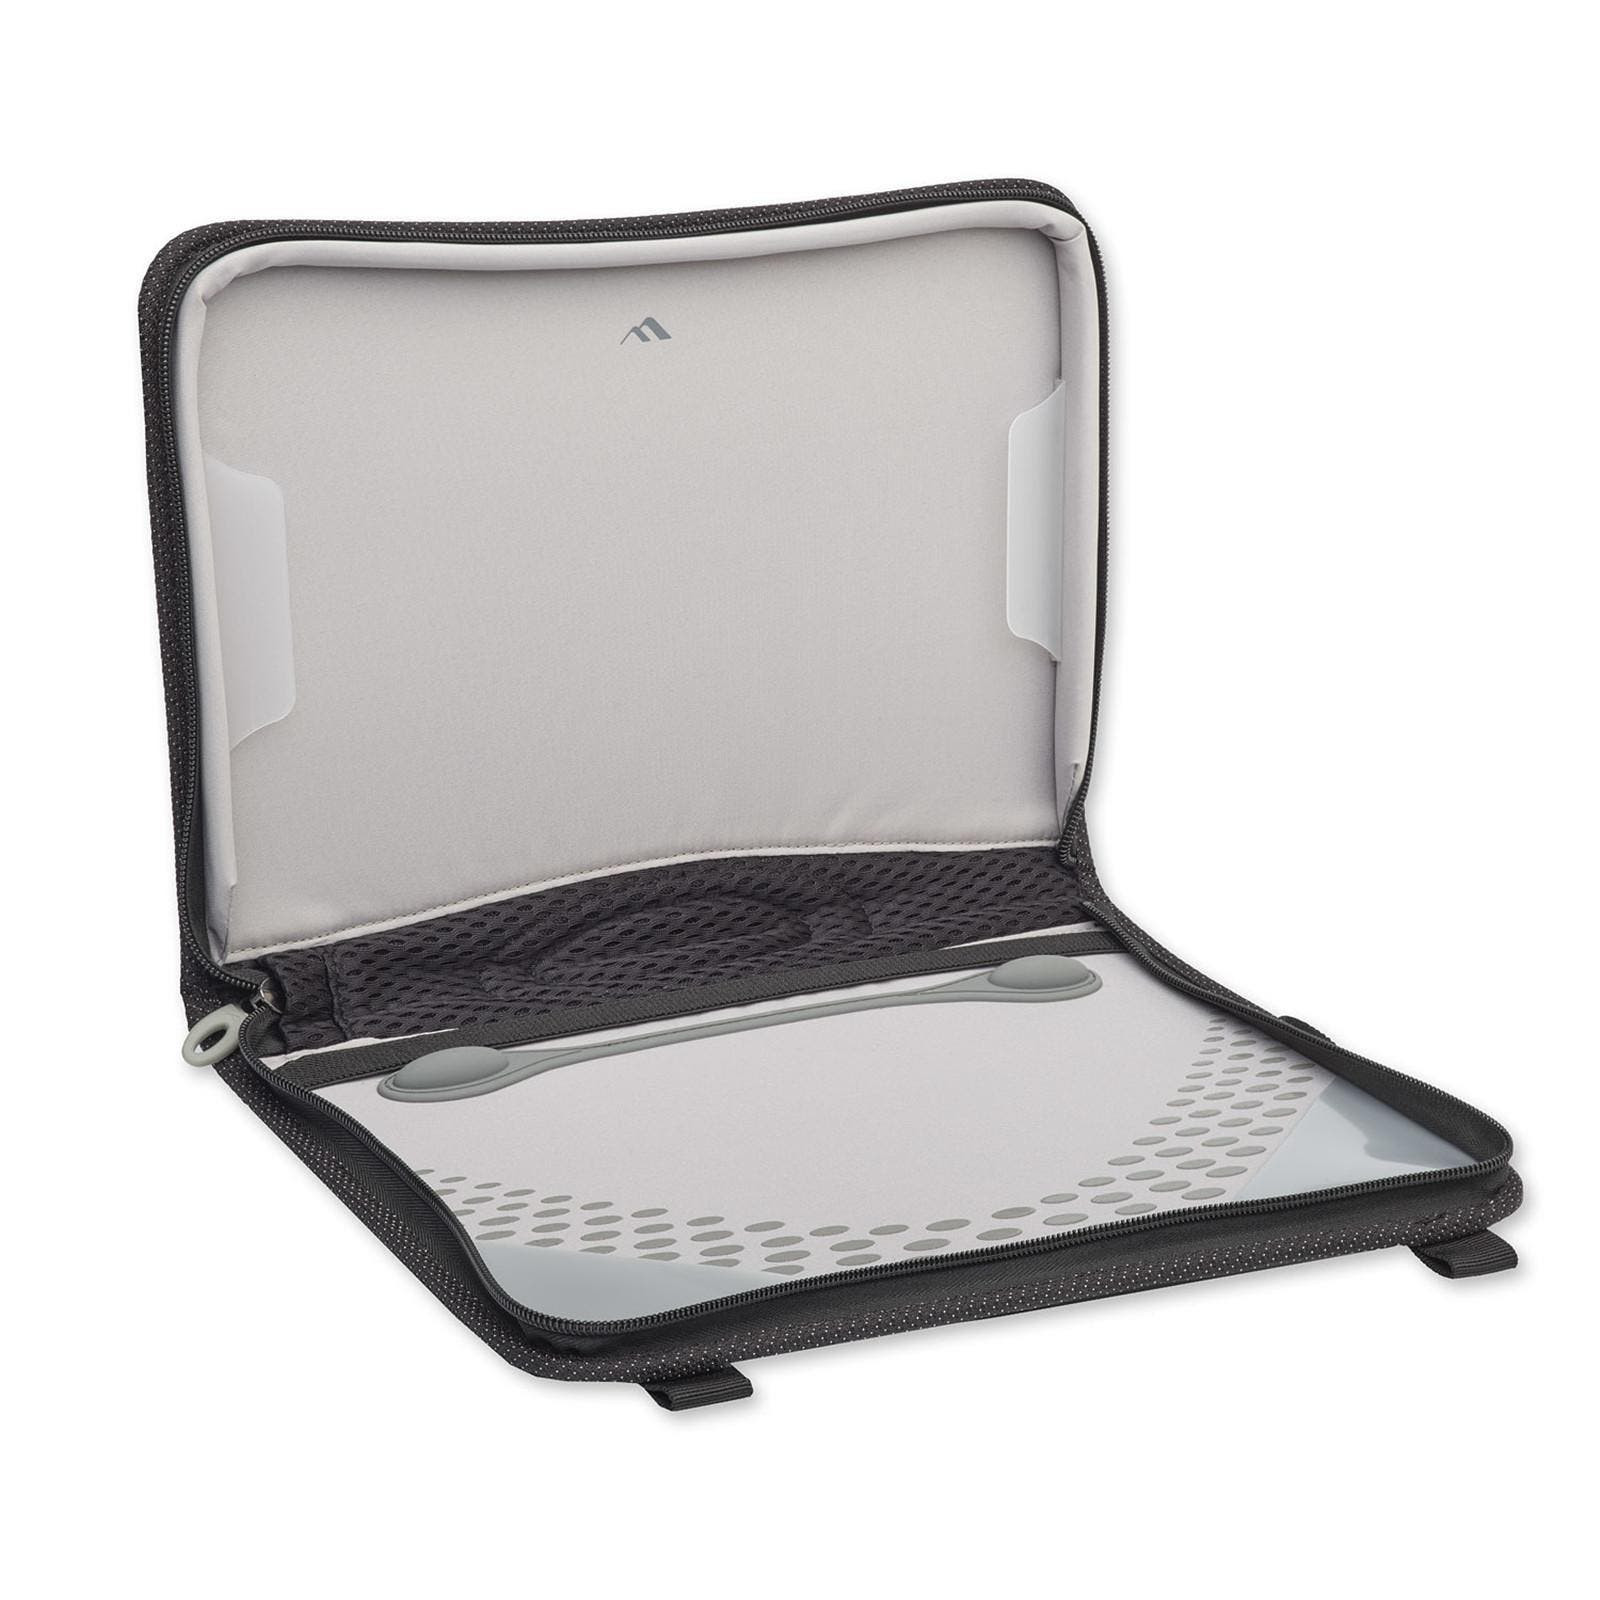 Brenthaven Tred Zip Folio Case for 11  Laptops - 800D Coretext Body Material Highlights    * Brenthaven Tred Zip Folio Case for 11  Laptops – 800D Coretext Body Material   * Weight: 1.0KGM      1 Year Manufacturer Warranty